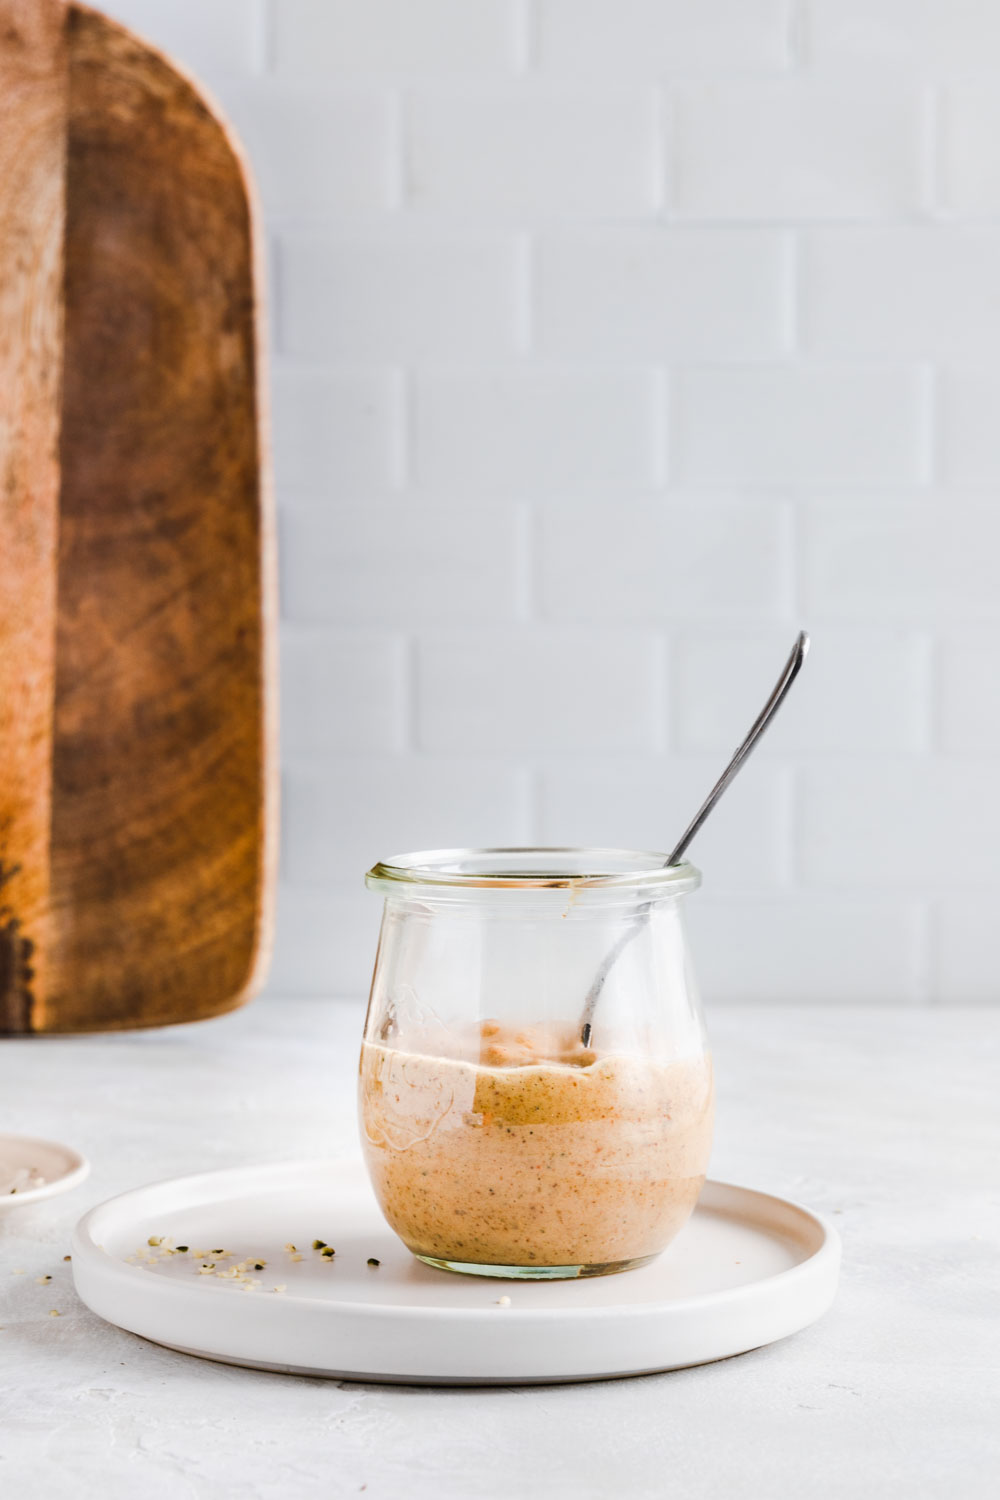 Miso dressing in a small glass jar with a teaspoon on a light backdrop with a wooden cutting board and wooden utensils in the background.